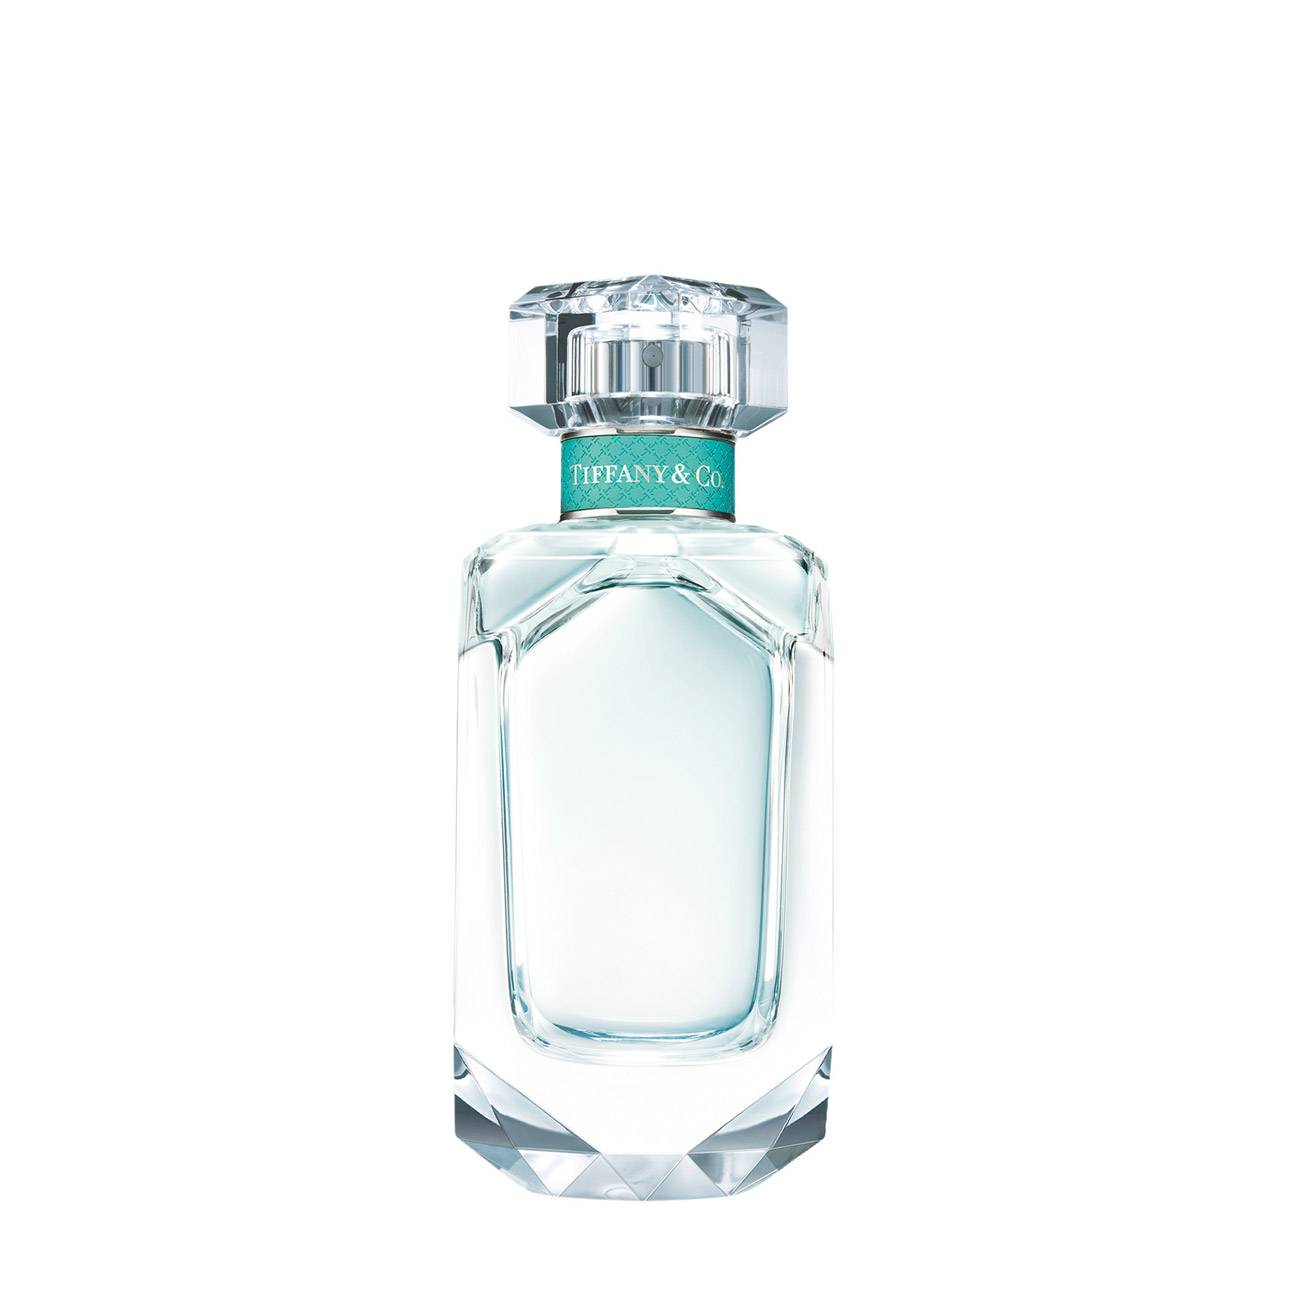 Tiffany & Co. Signature 75ml imagine